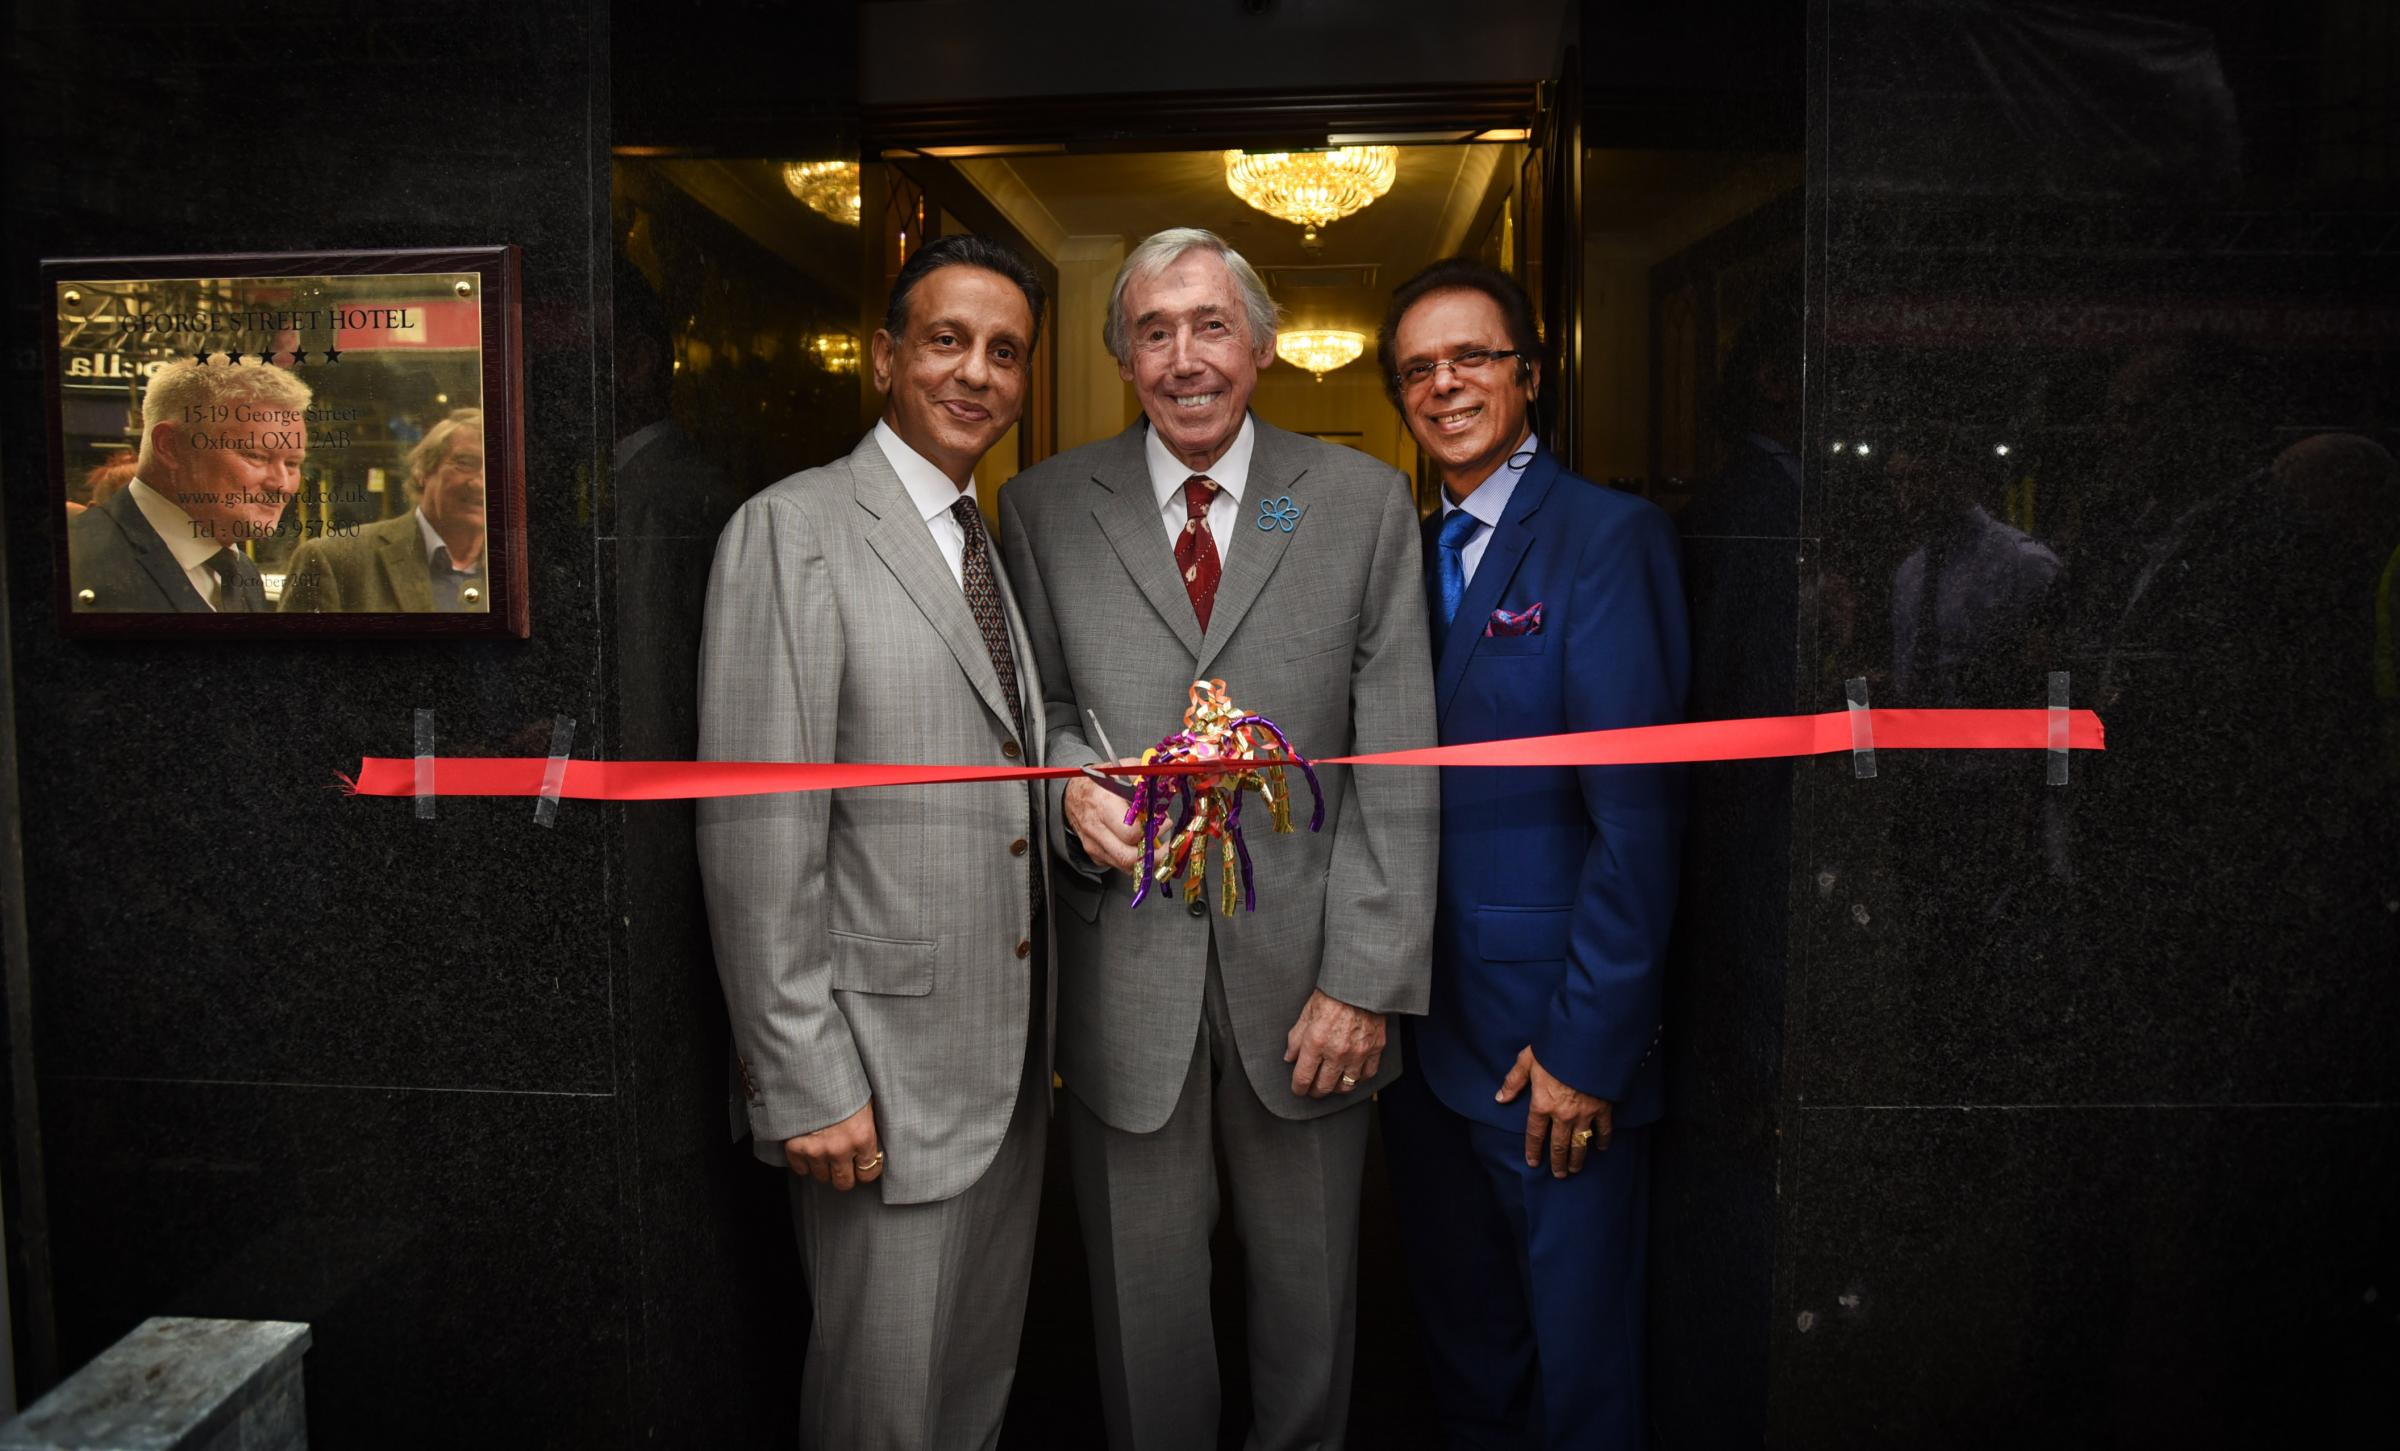 Official opening of the 5 Star George Street Hotel. Rajinder Pal,Gordon Banks and Hardeep Gidda. pictured by Richard Cave in 2017